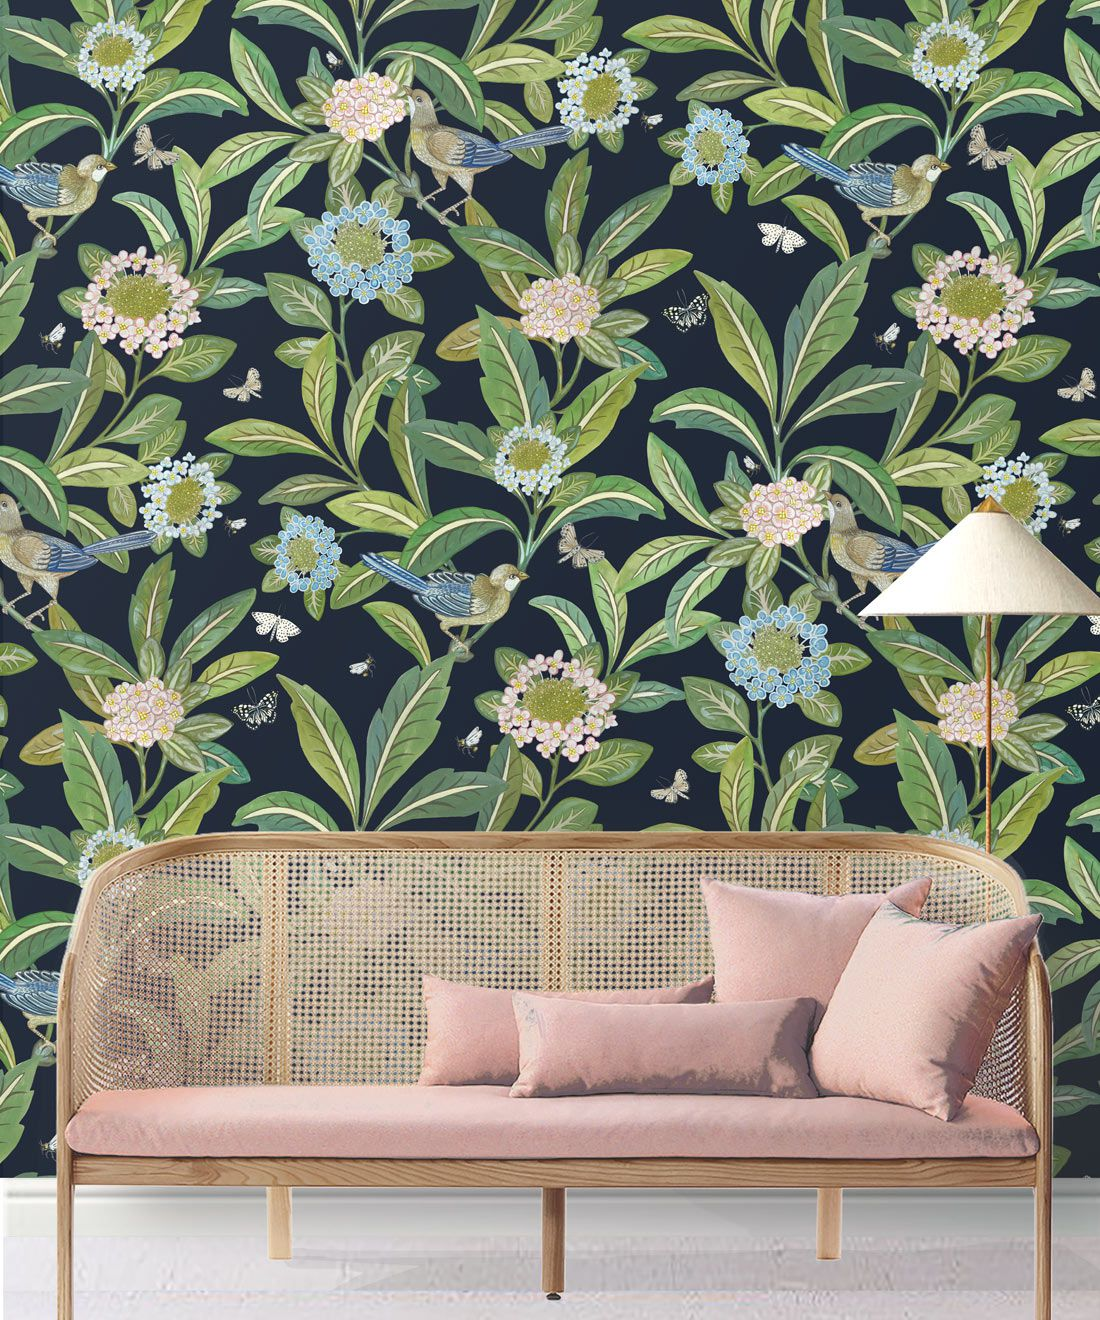 Summer Garden Wallpaper • Original Wallpaper • Floral Wallpaper Insitu behind pink couch